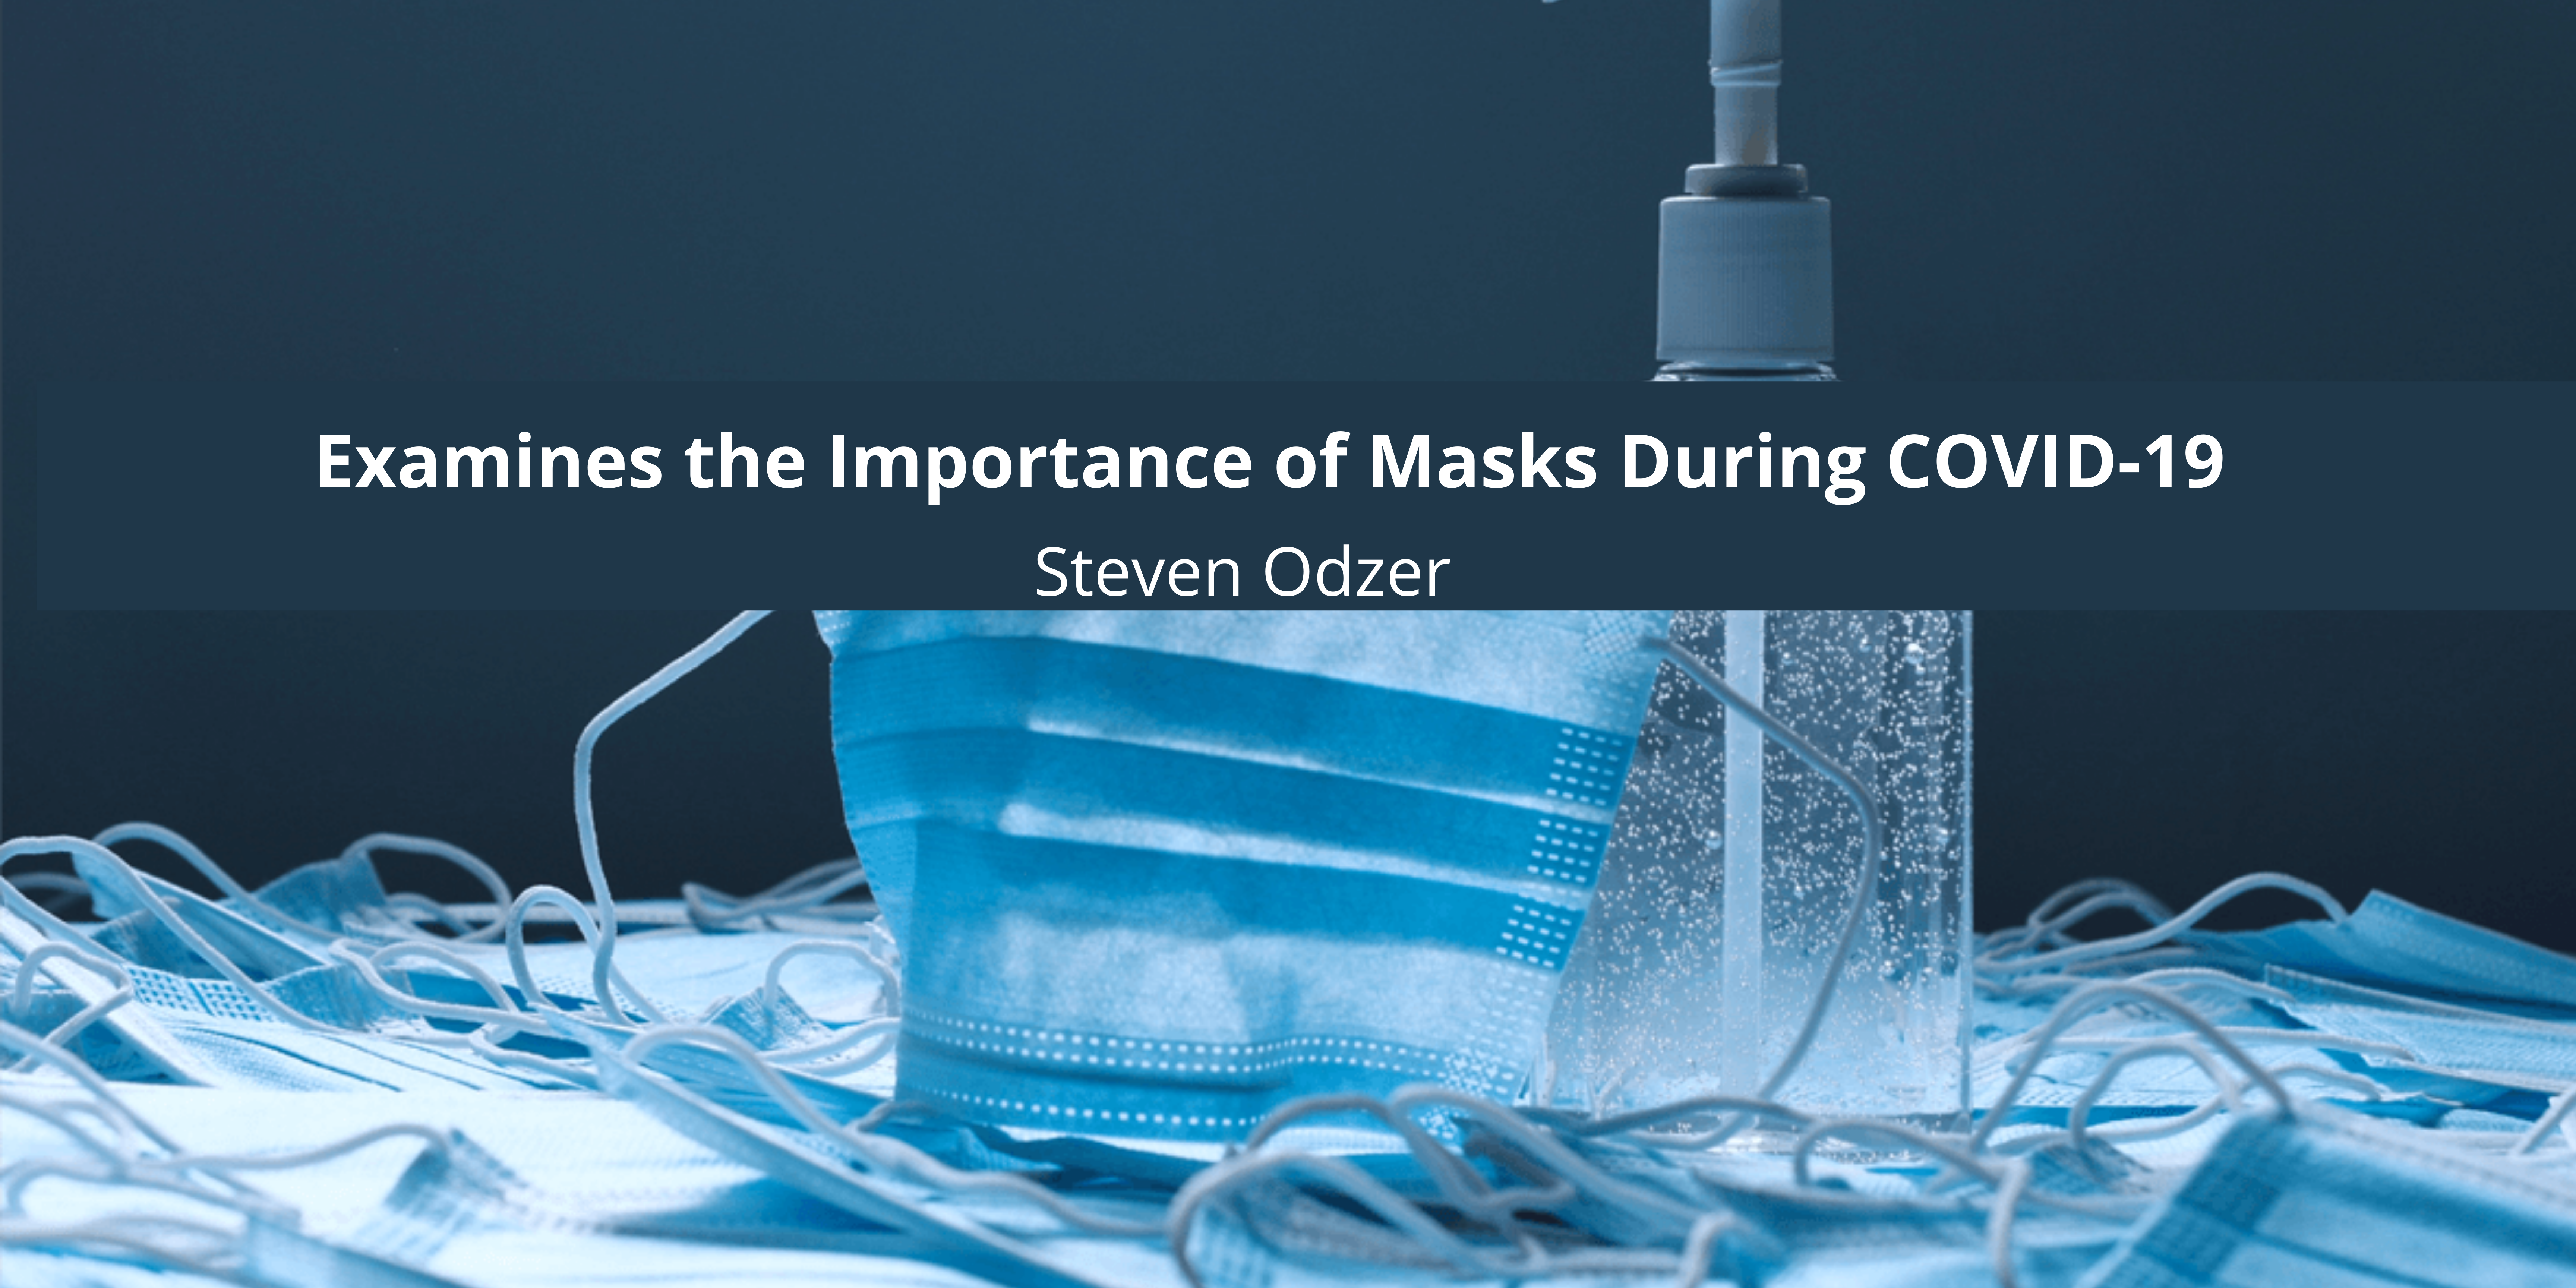 Steven Odzer of New York Examines the Importance of Masks During COVID-19